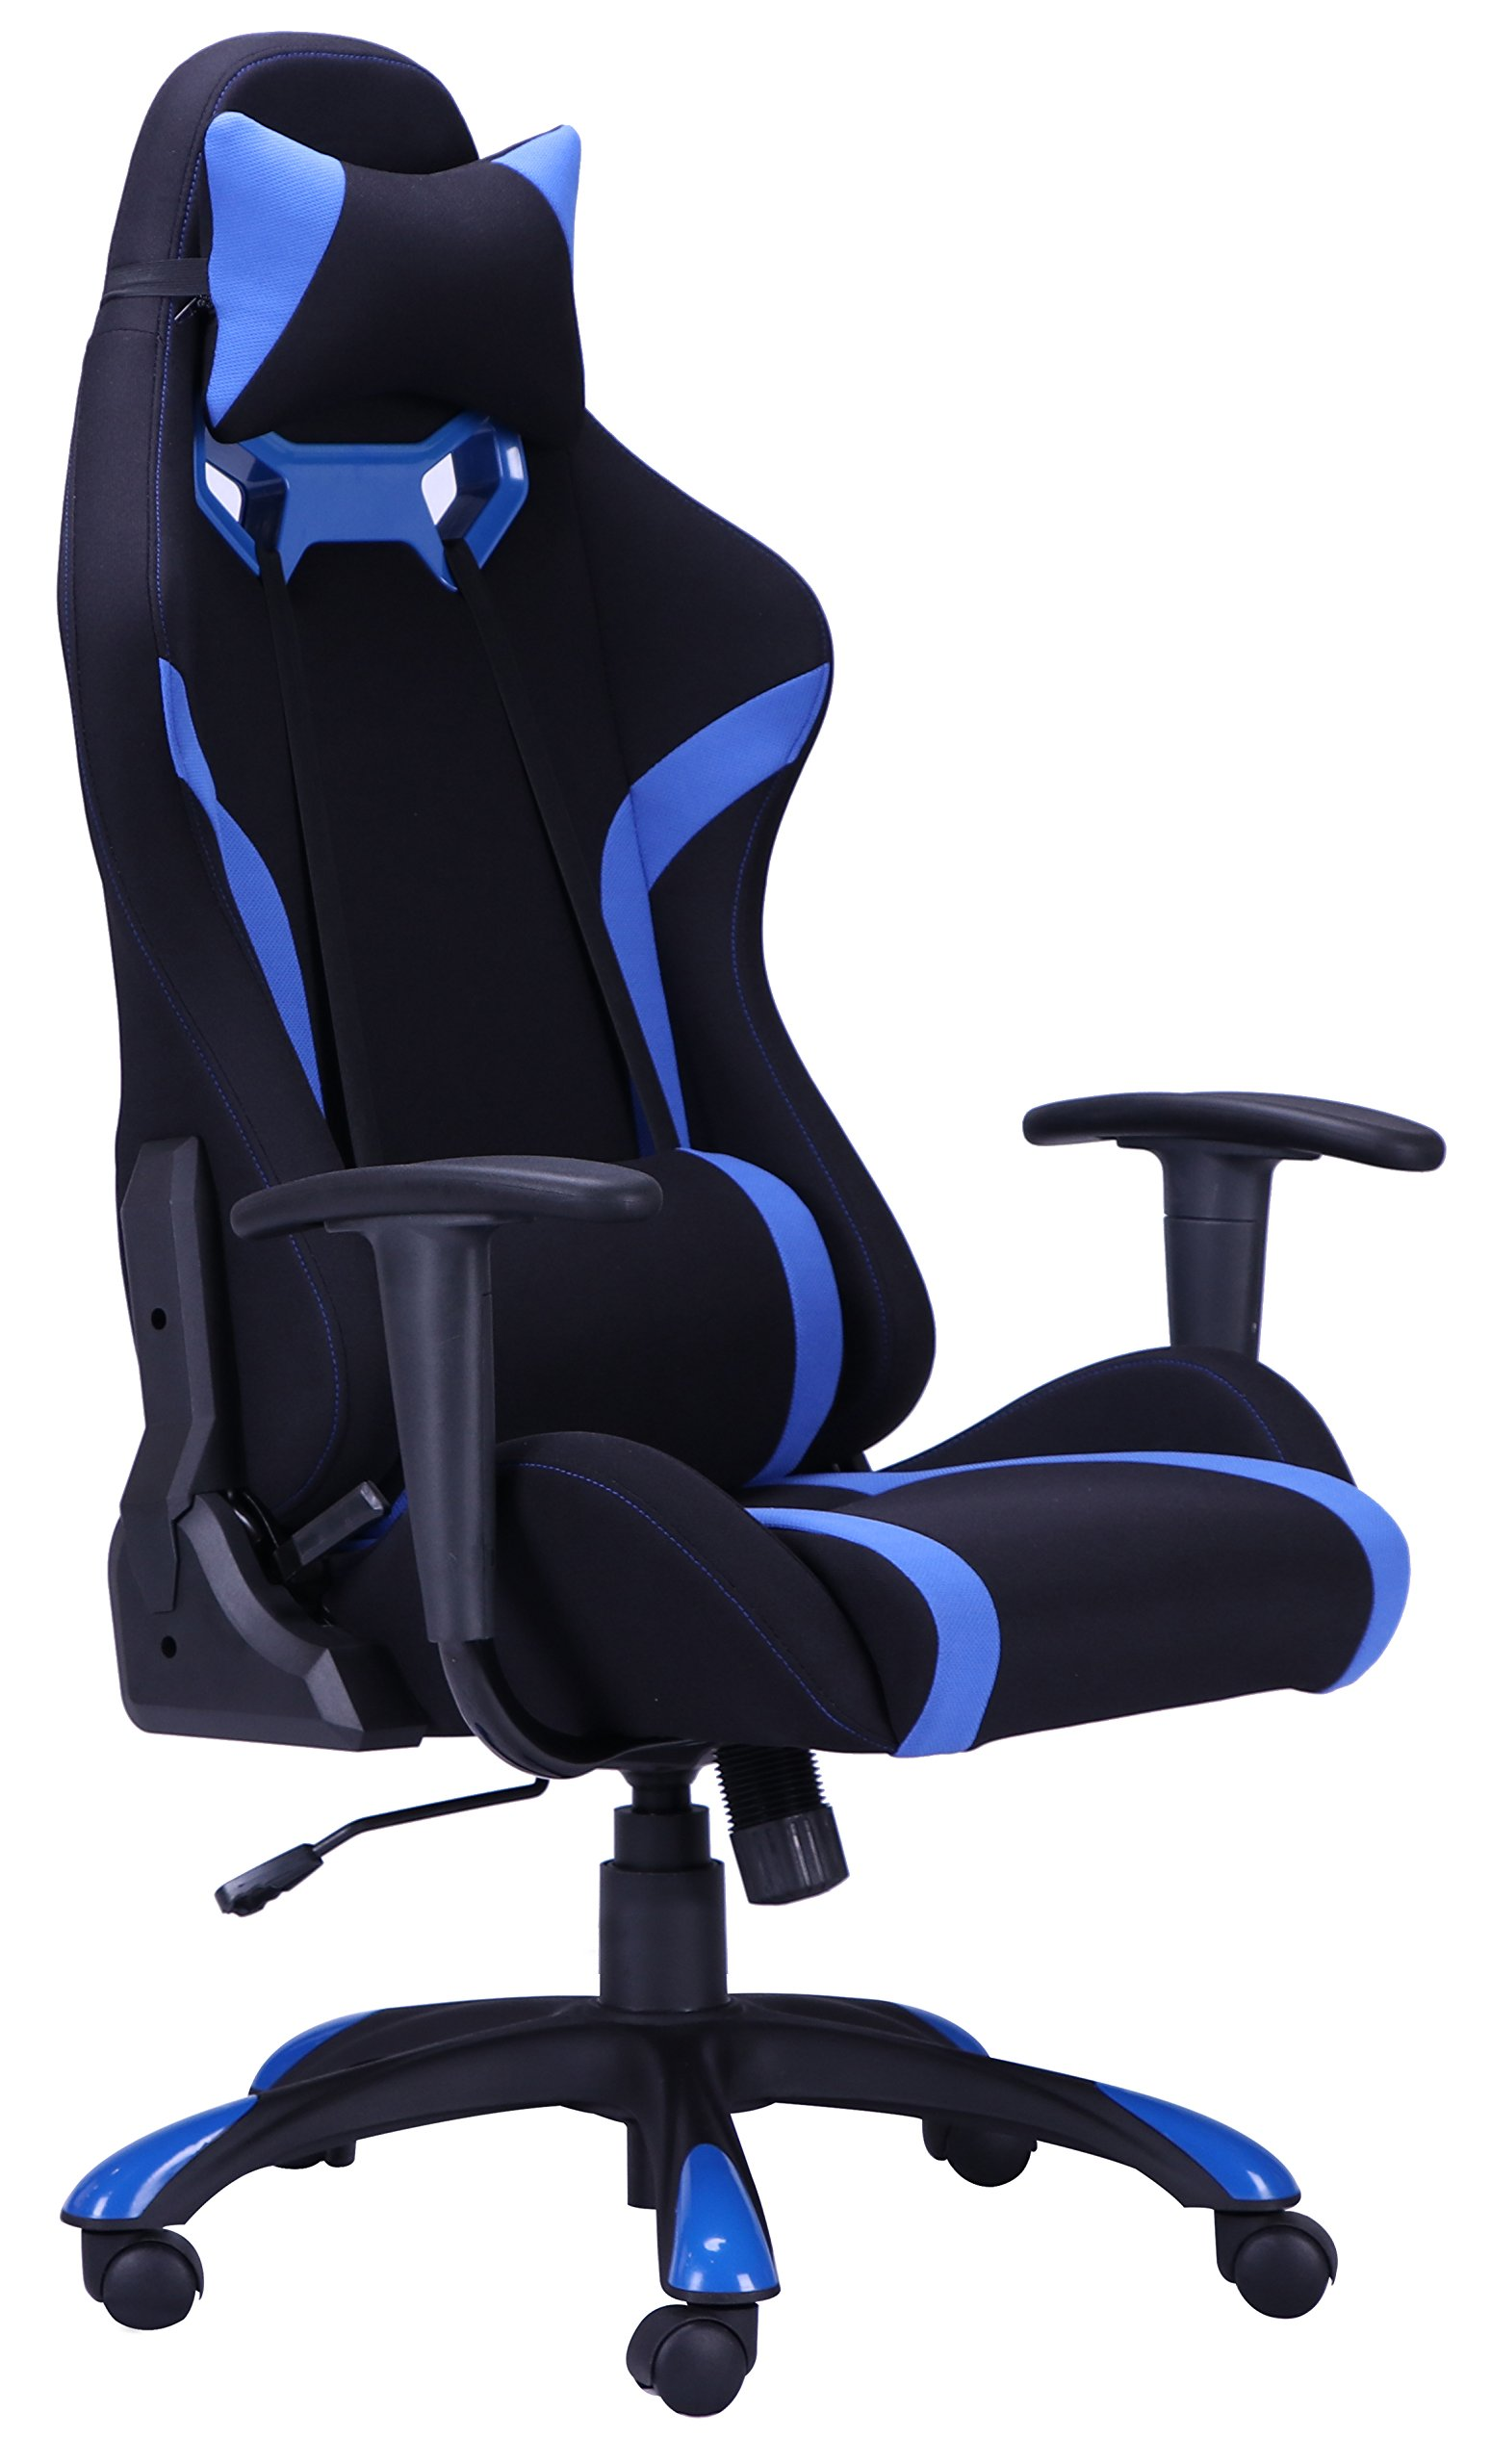 PayLessHere Blue High Back Recliner Office Chair Computer Racing Gaming Chair by PayLessHere